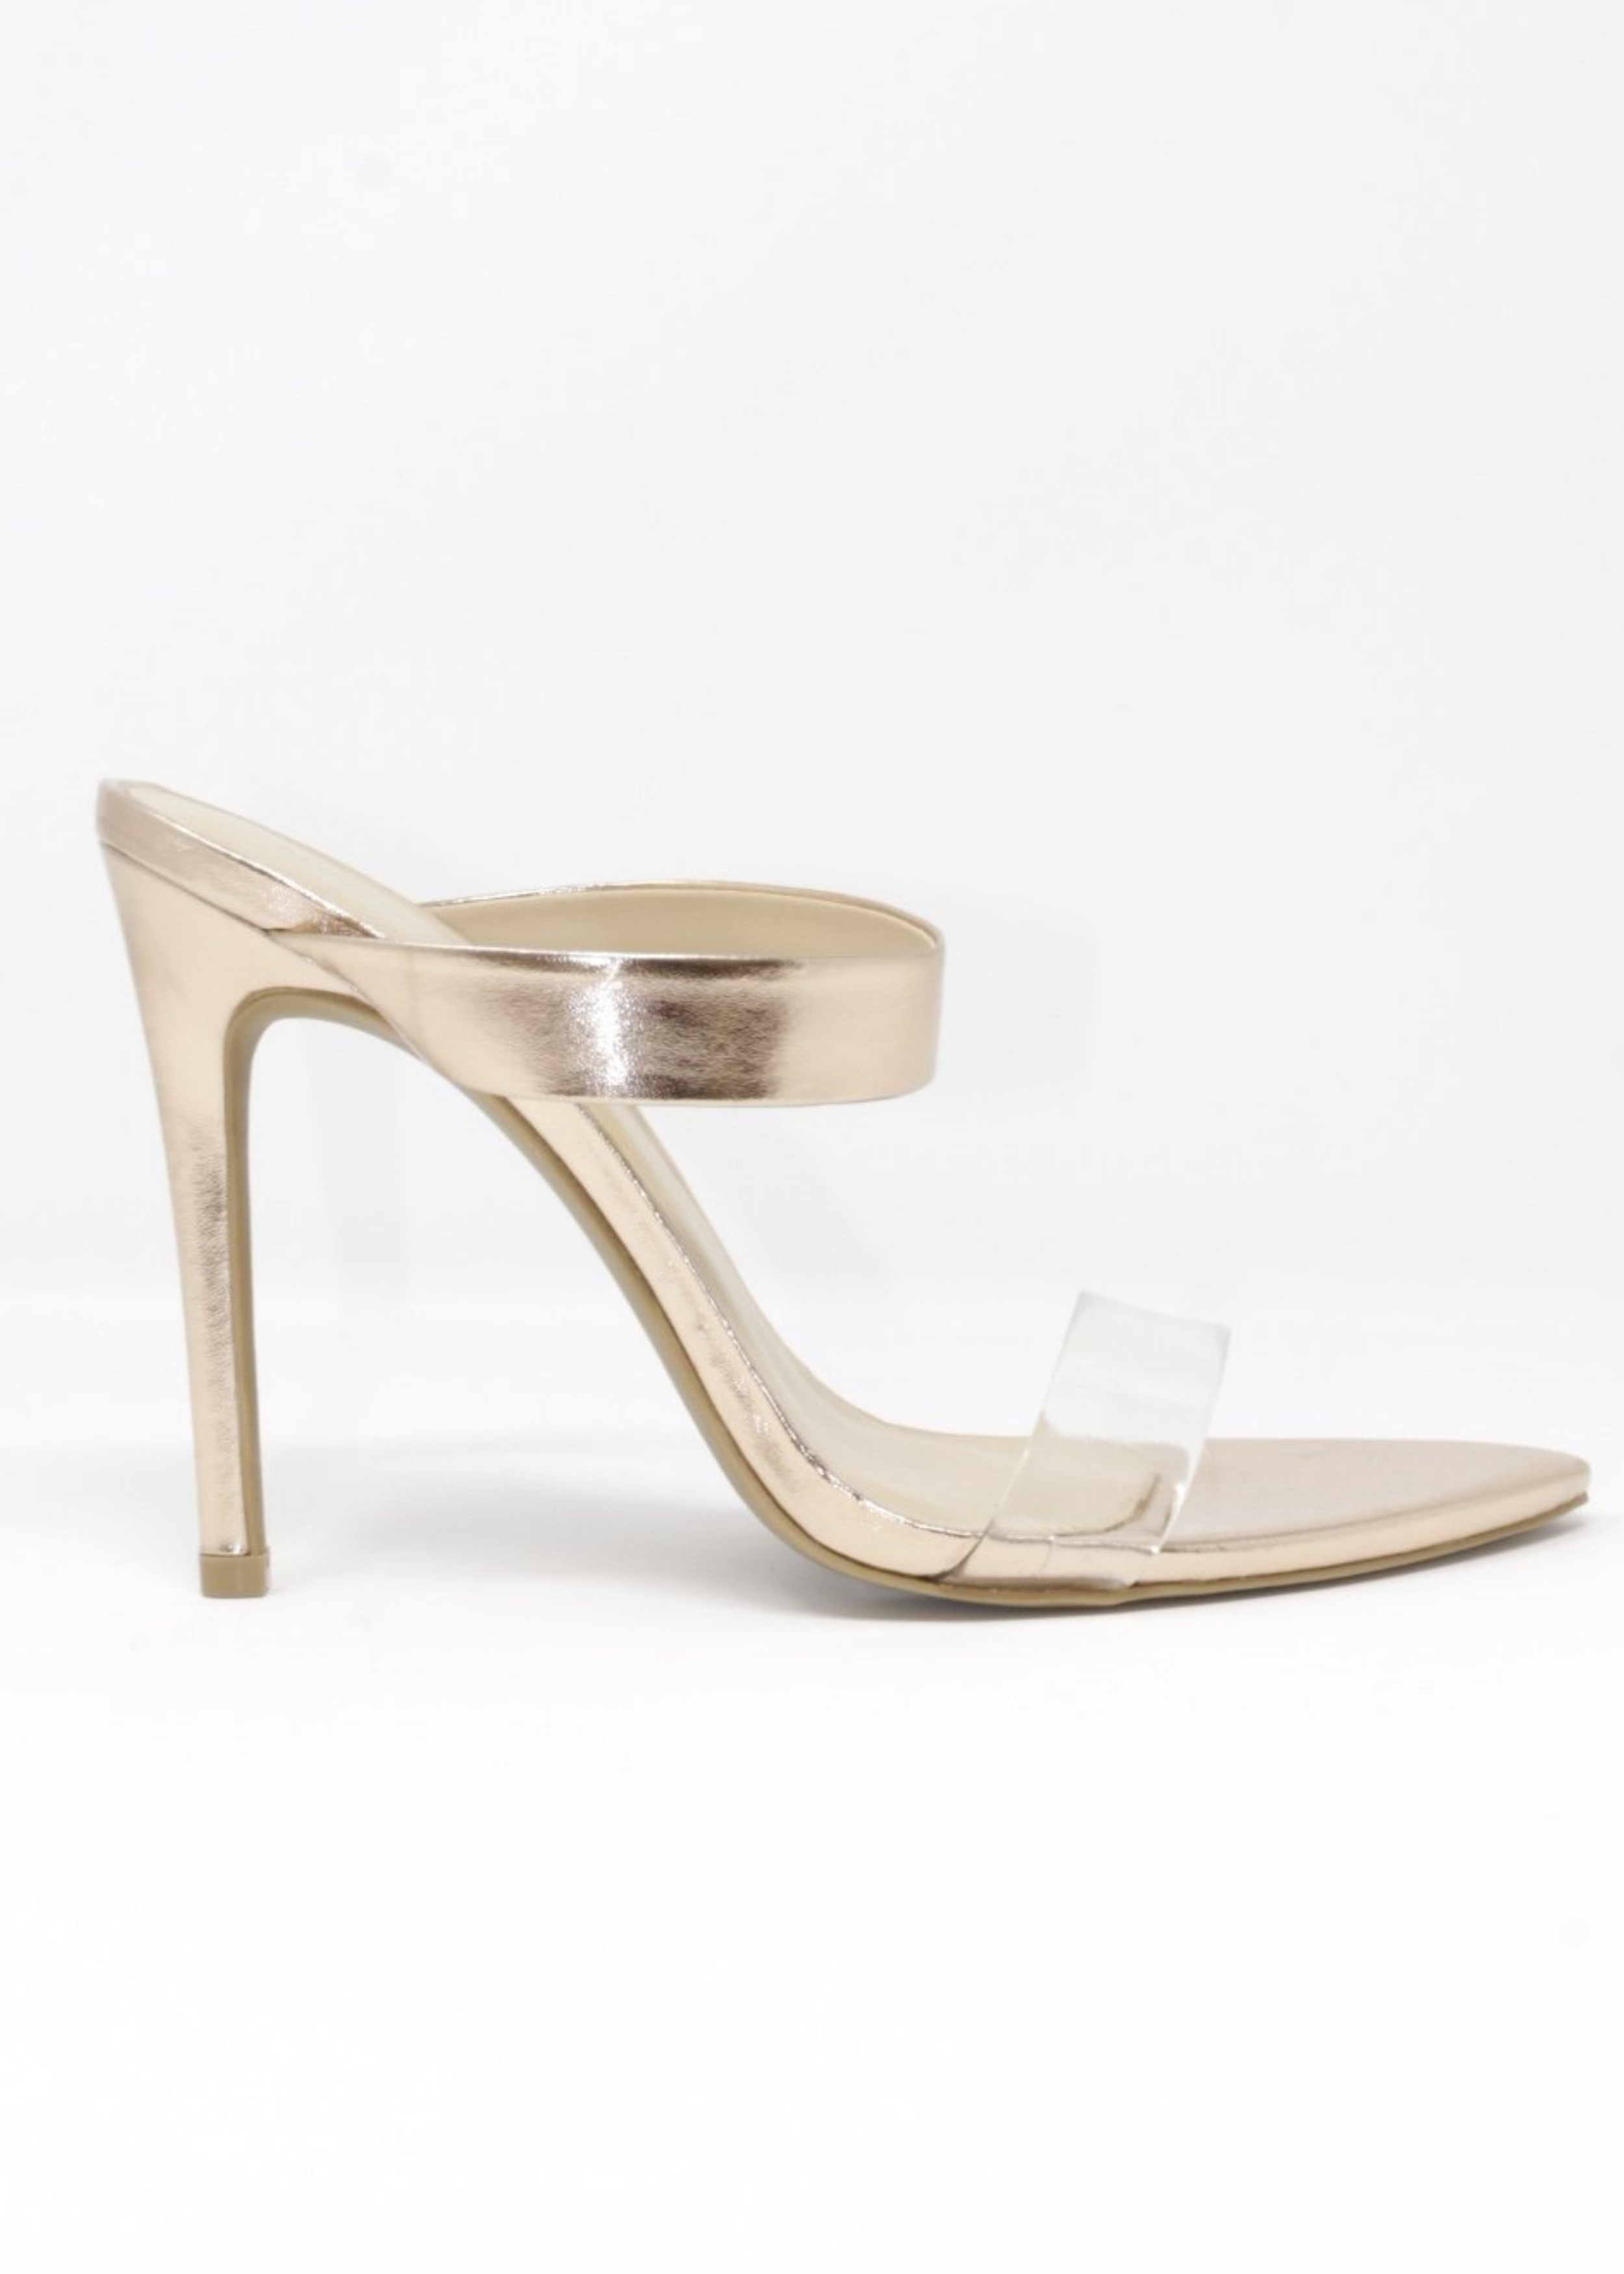 Audrey Heels with Clear Strap in RoseGold